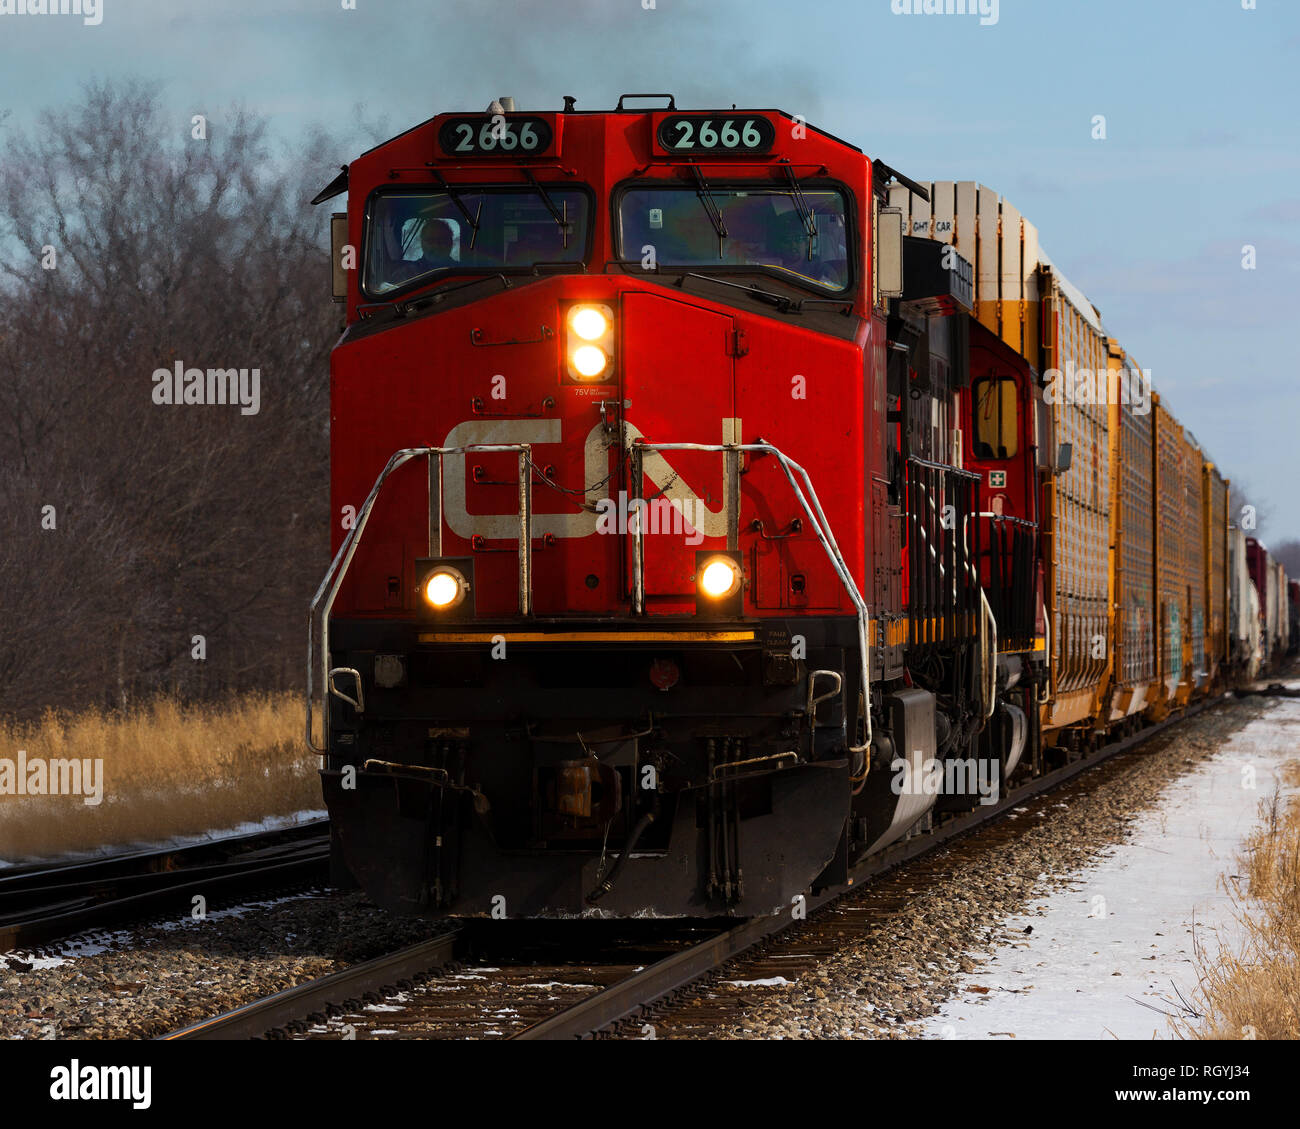 Canadian National Railway #2666 hauling freight through Durand, Michigan in winter - Stock Image